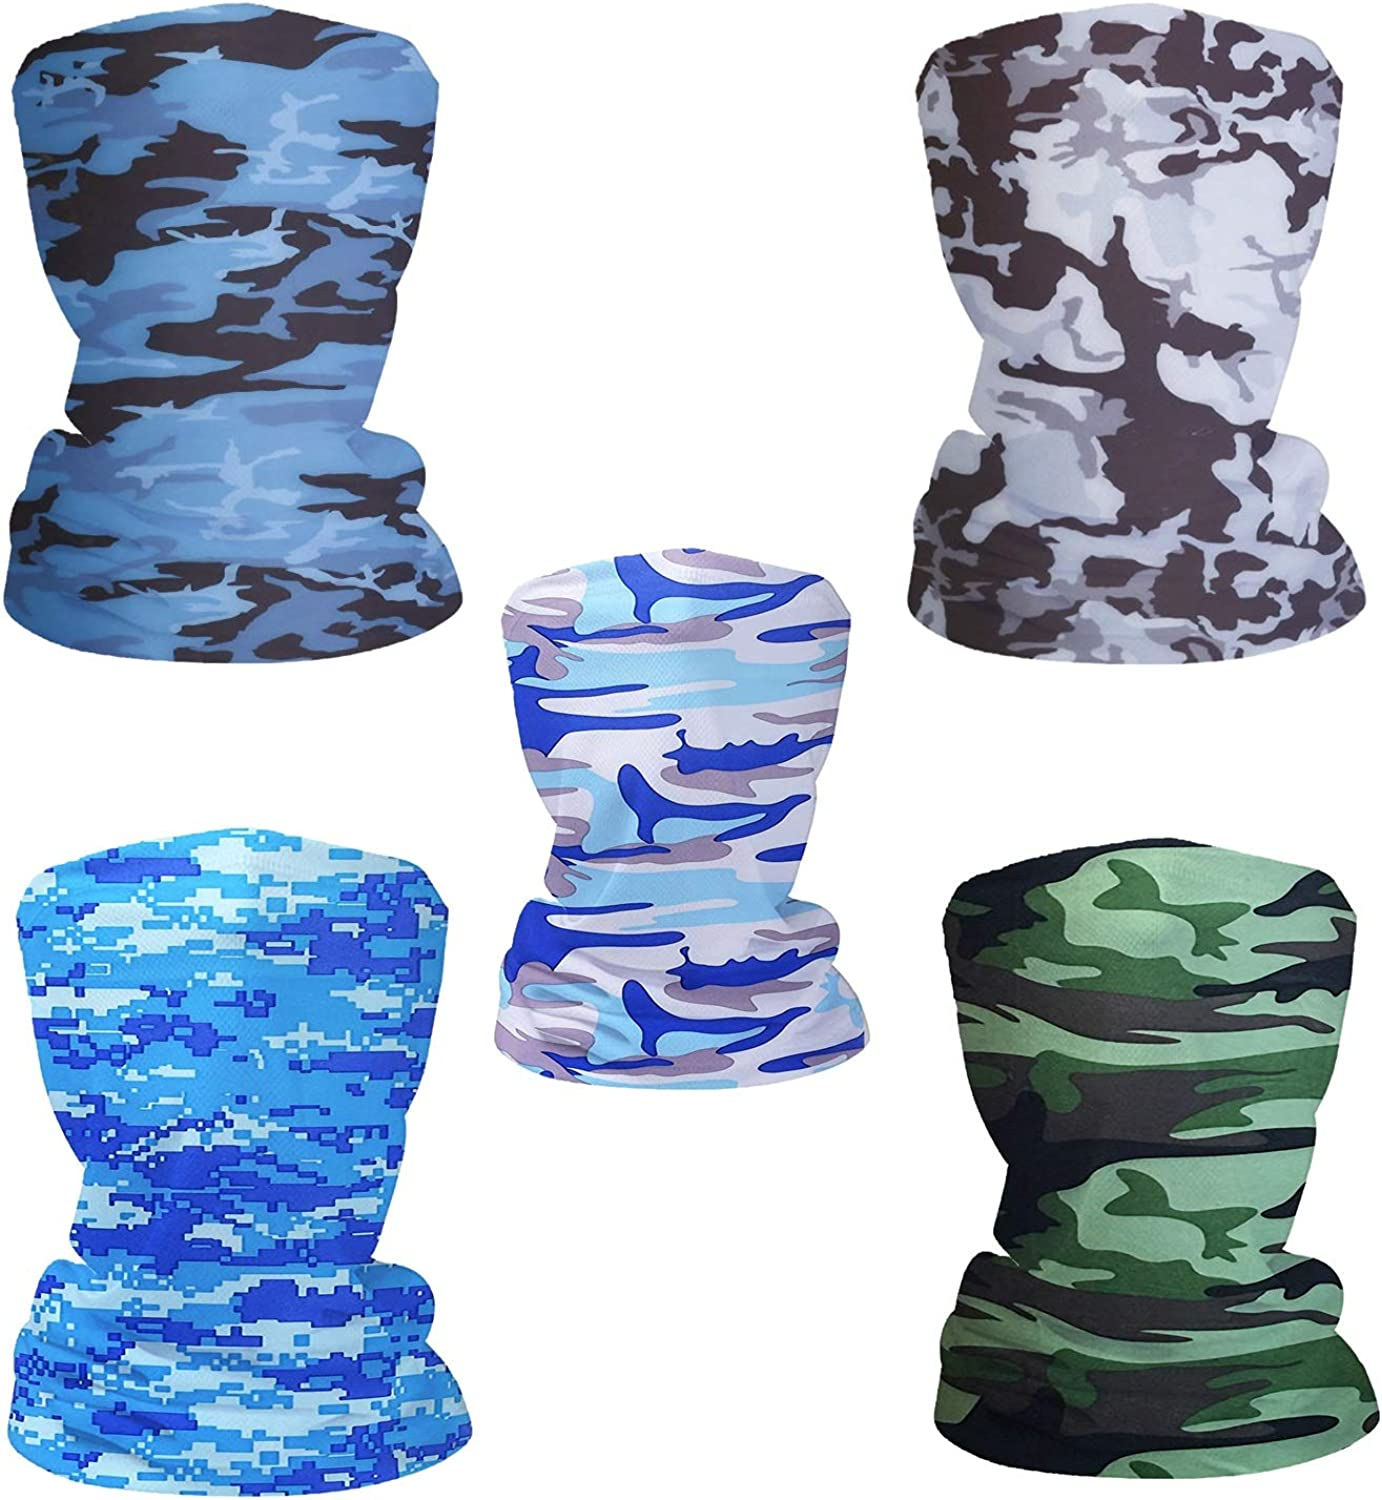 6pcs Magic Scarf Outdoor Headwear Bandana Sports Tube UV Face Mask for Workout Yoga Running Hiking Riding